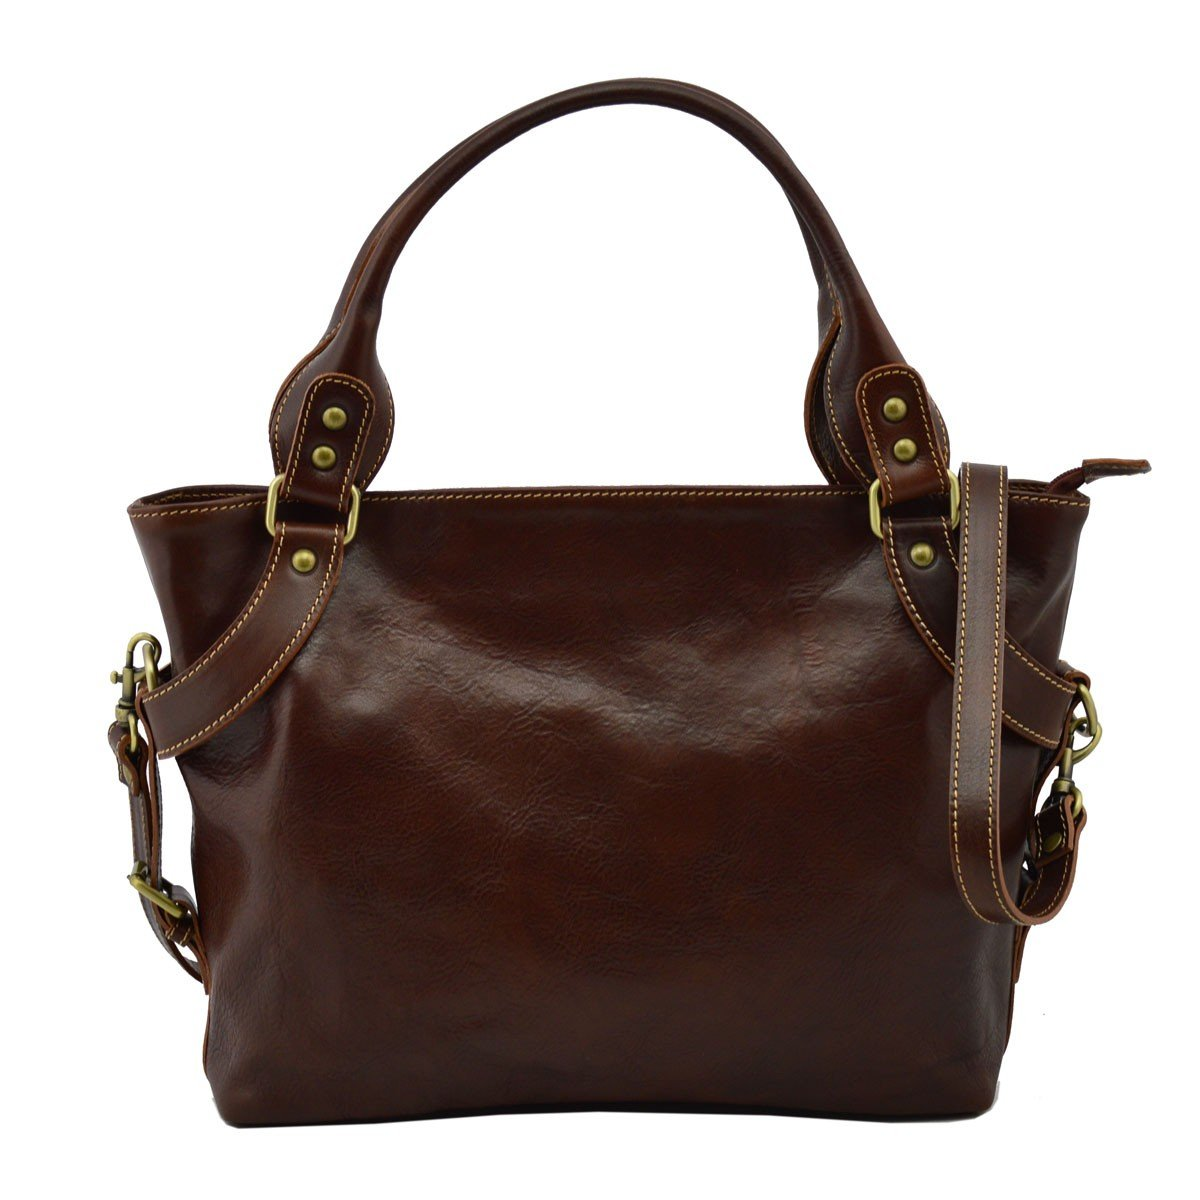 Dream Leather Bags Made in Italy Genuine Leather レディース US サイズ: 1 カラー: ブラウン   B074PTCKTK